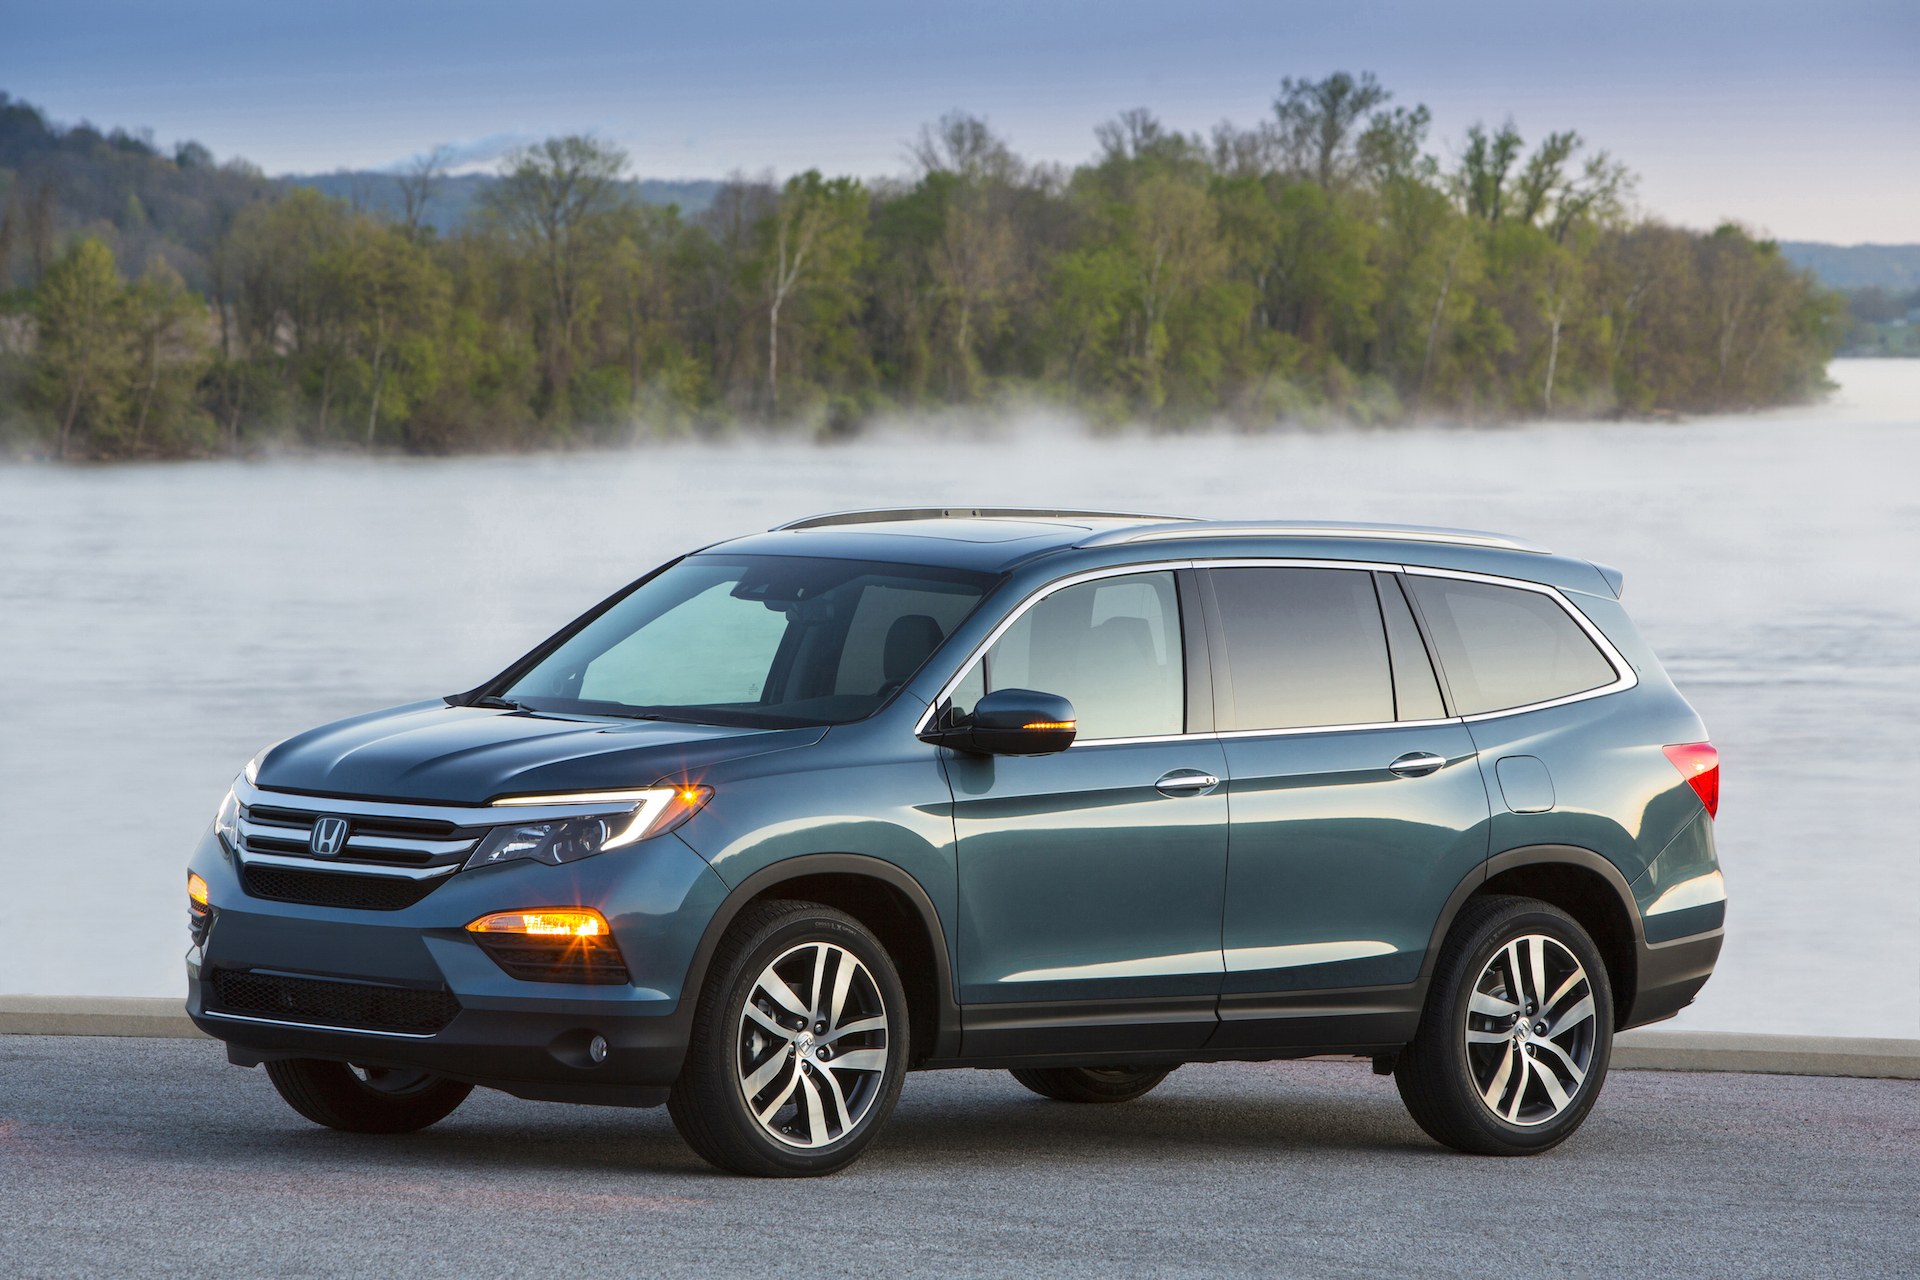 2016 Honda Pilot Seven Seat SUV Rated At 22 23 MPG bined